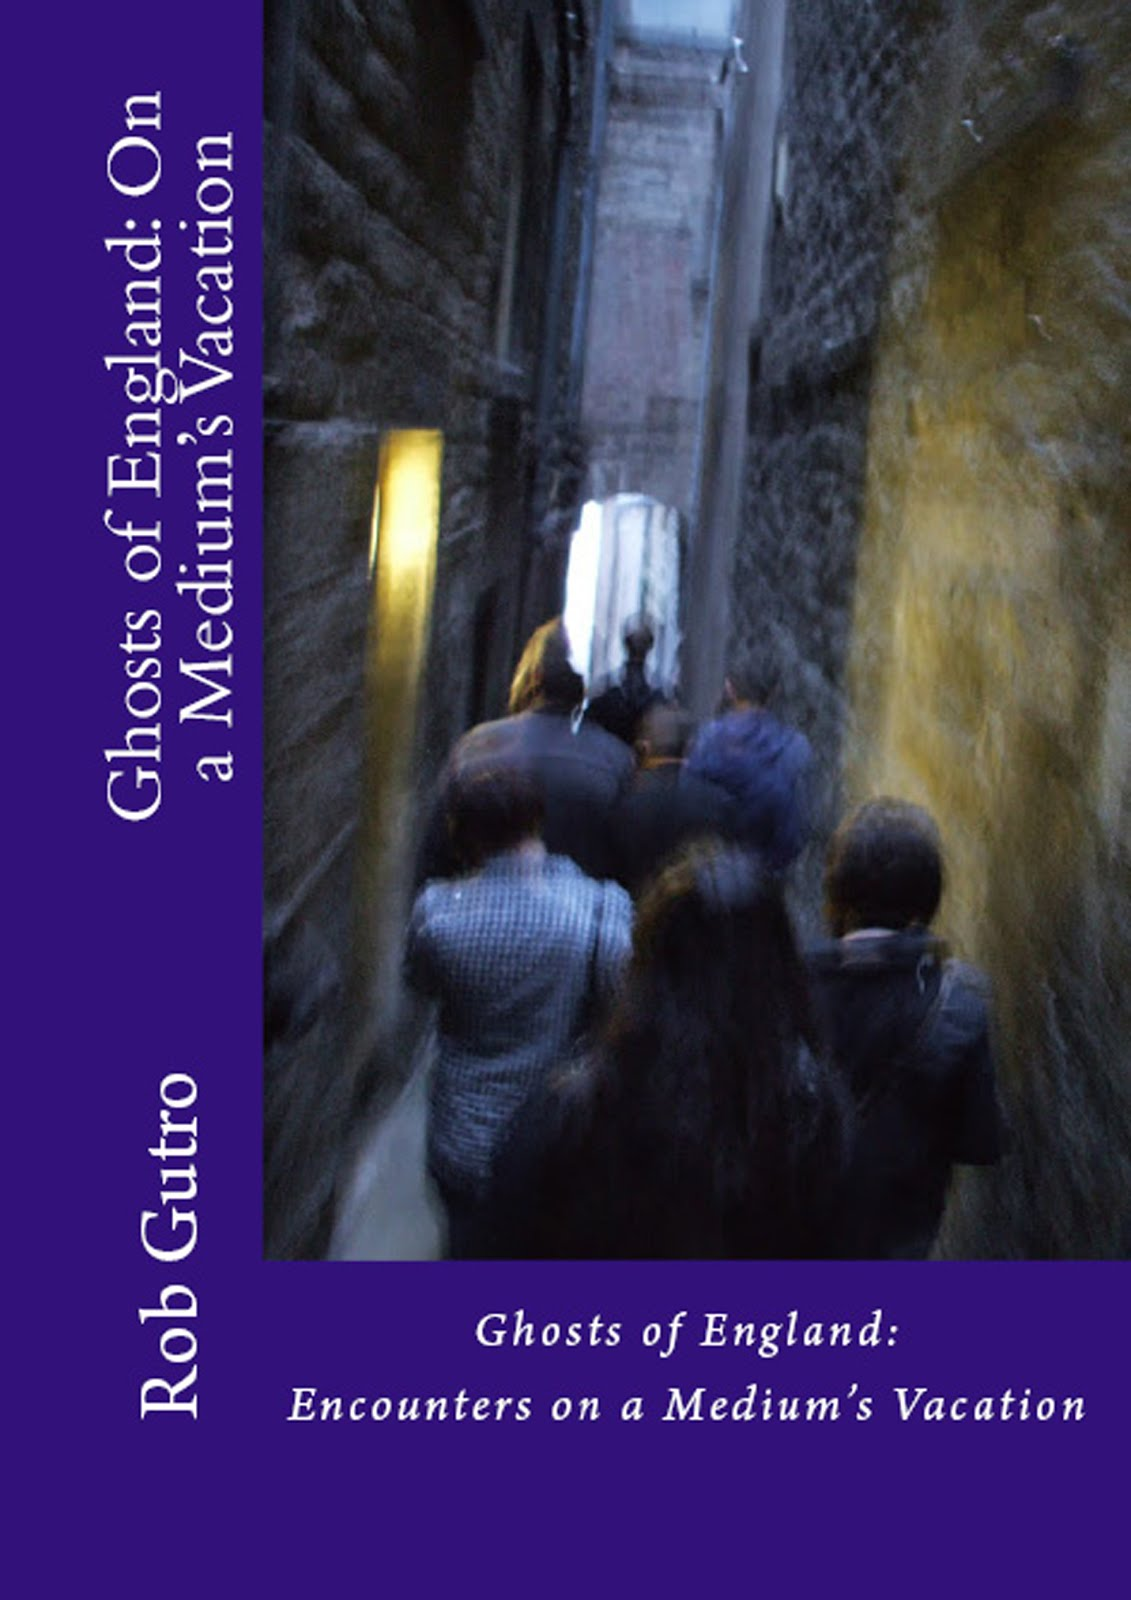 NEW! Ghosts of England: On a Medium's Vacation